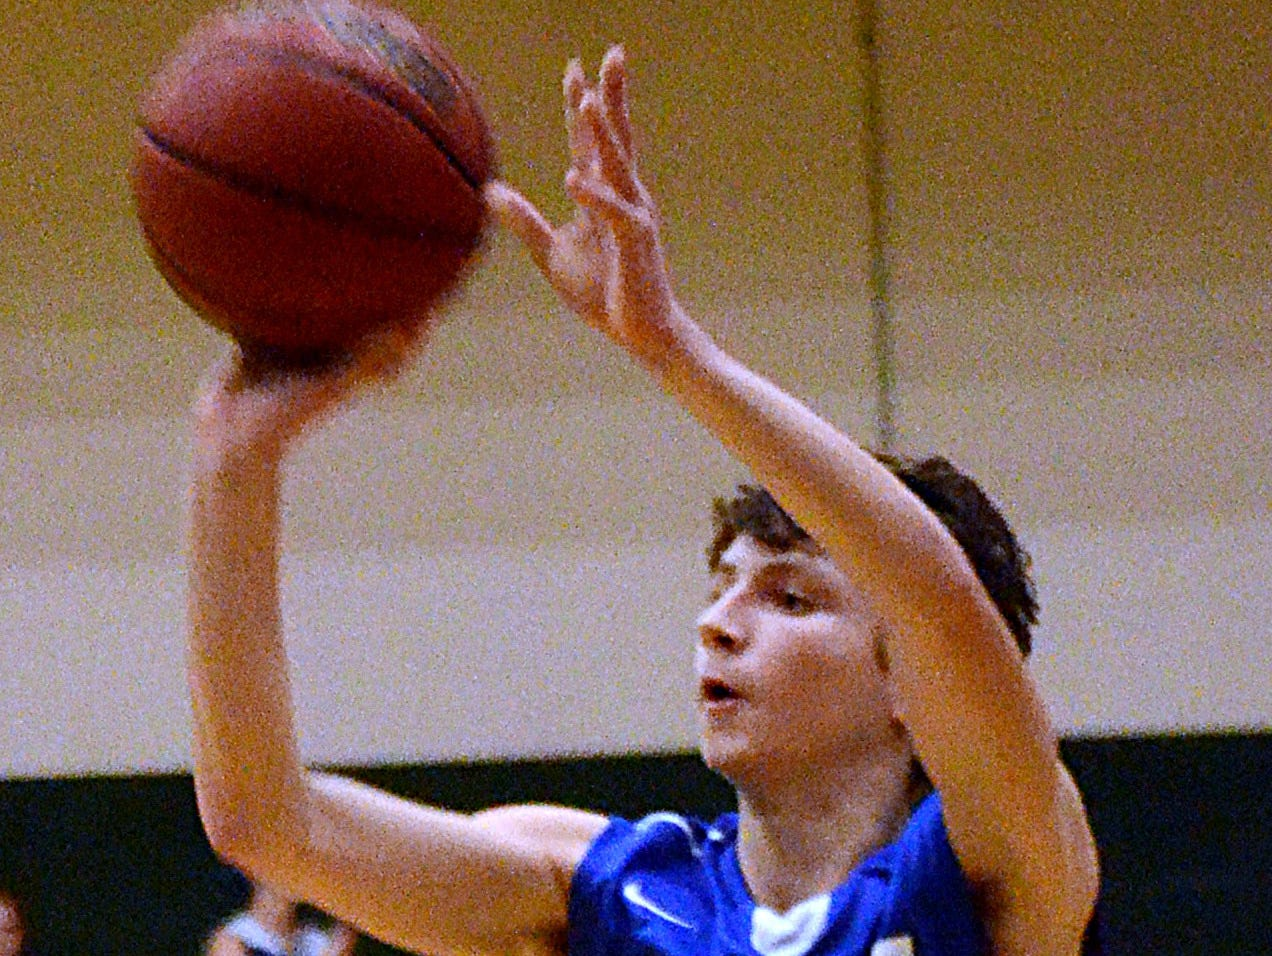 White House High freshman guard Cole Pond scored 11 points in Monday evening's 66-65 loss at Gallatin.